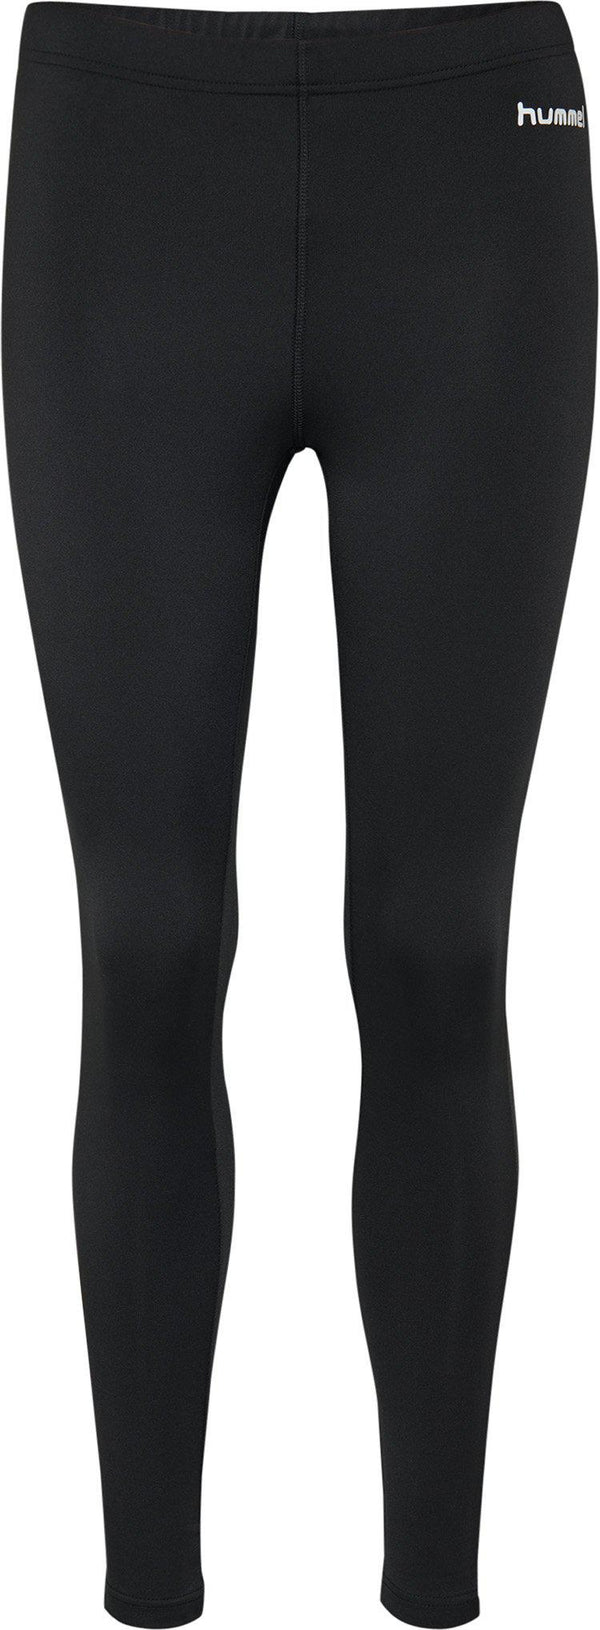 hummel Core Tights-Apparel-Soccer Source